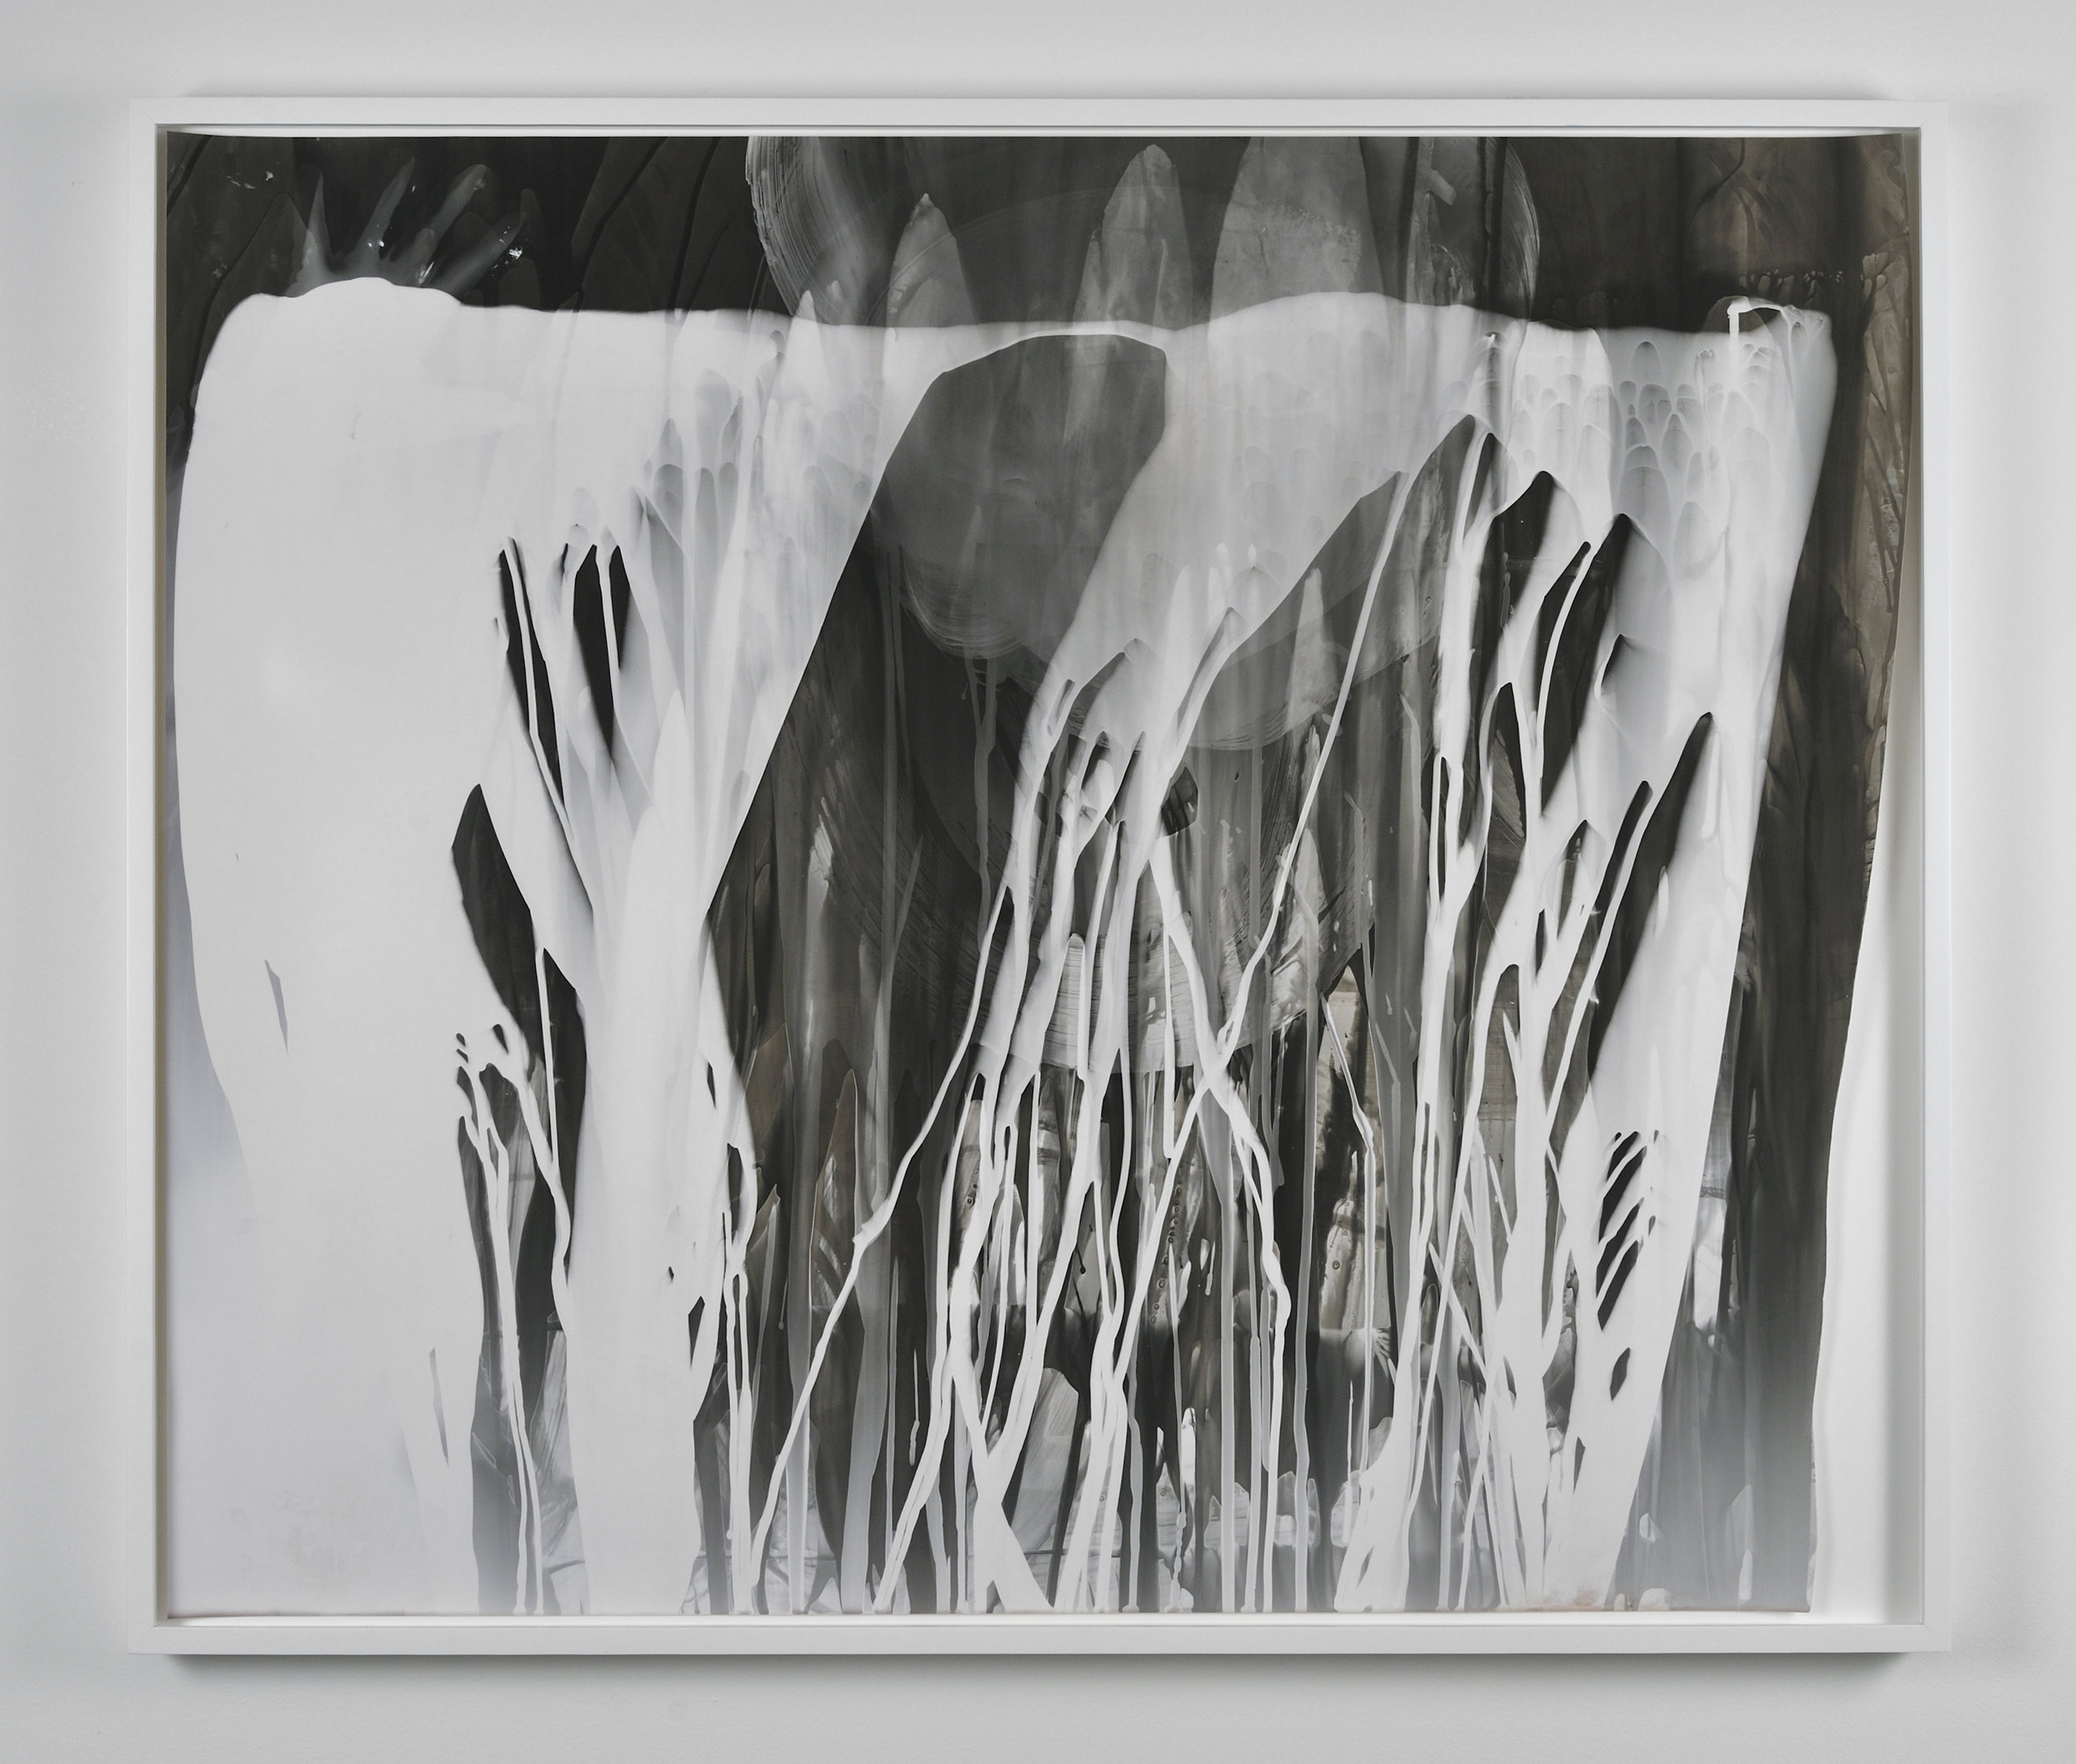 Photogram with Hand, 2011 gelatin silver print on resin coated paper 83 x 97,5 cm - 32 3/4 x 38 3/8 inches (framed)